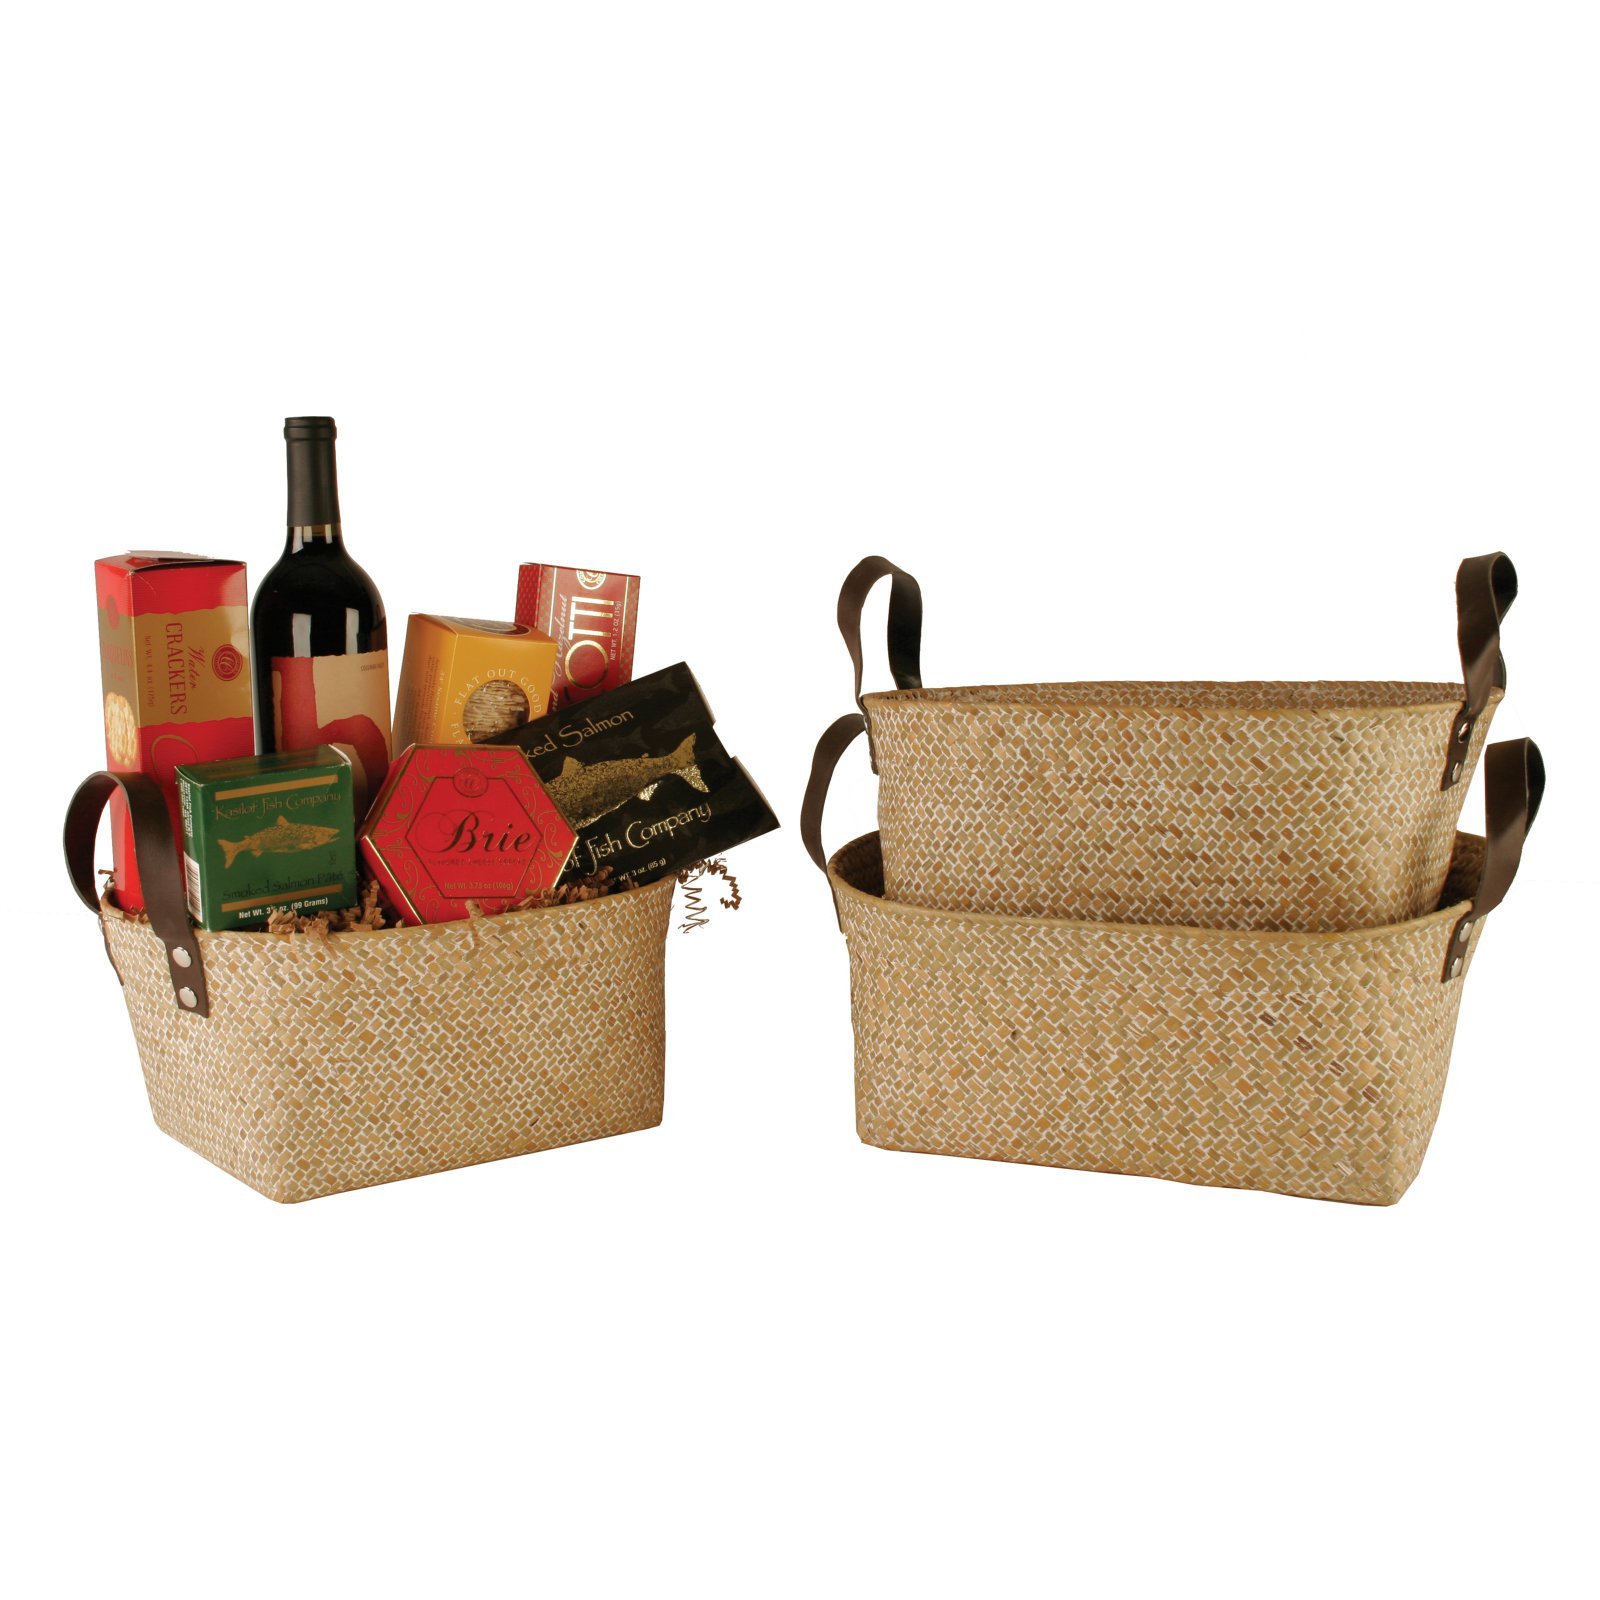 Wald Import Seagrass Reed Basket - Set of 3